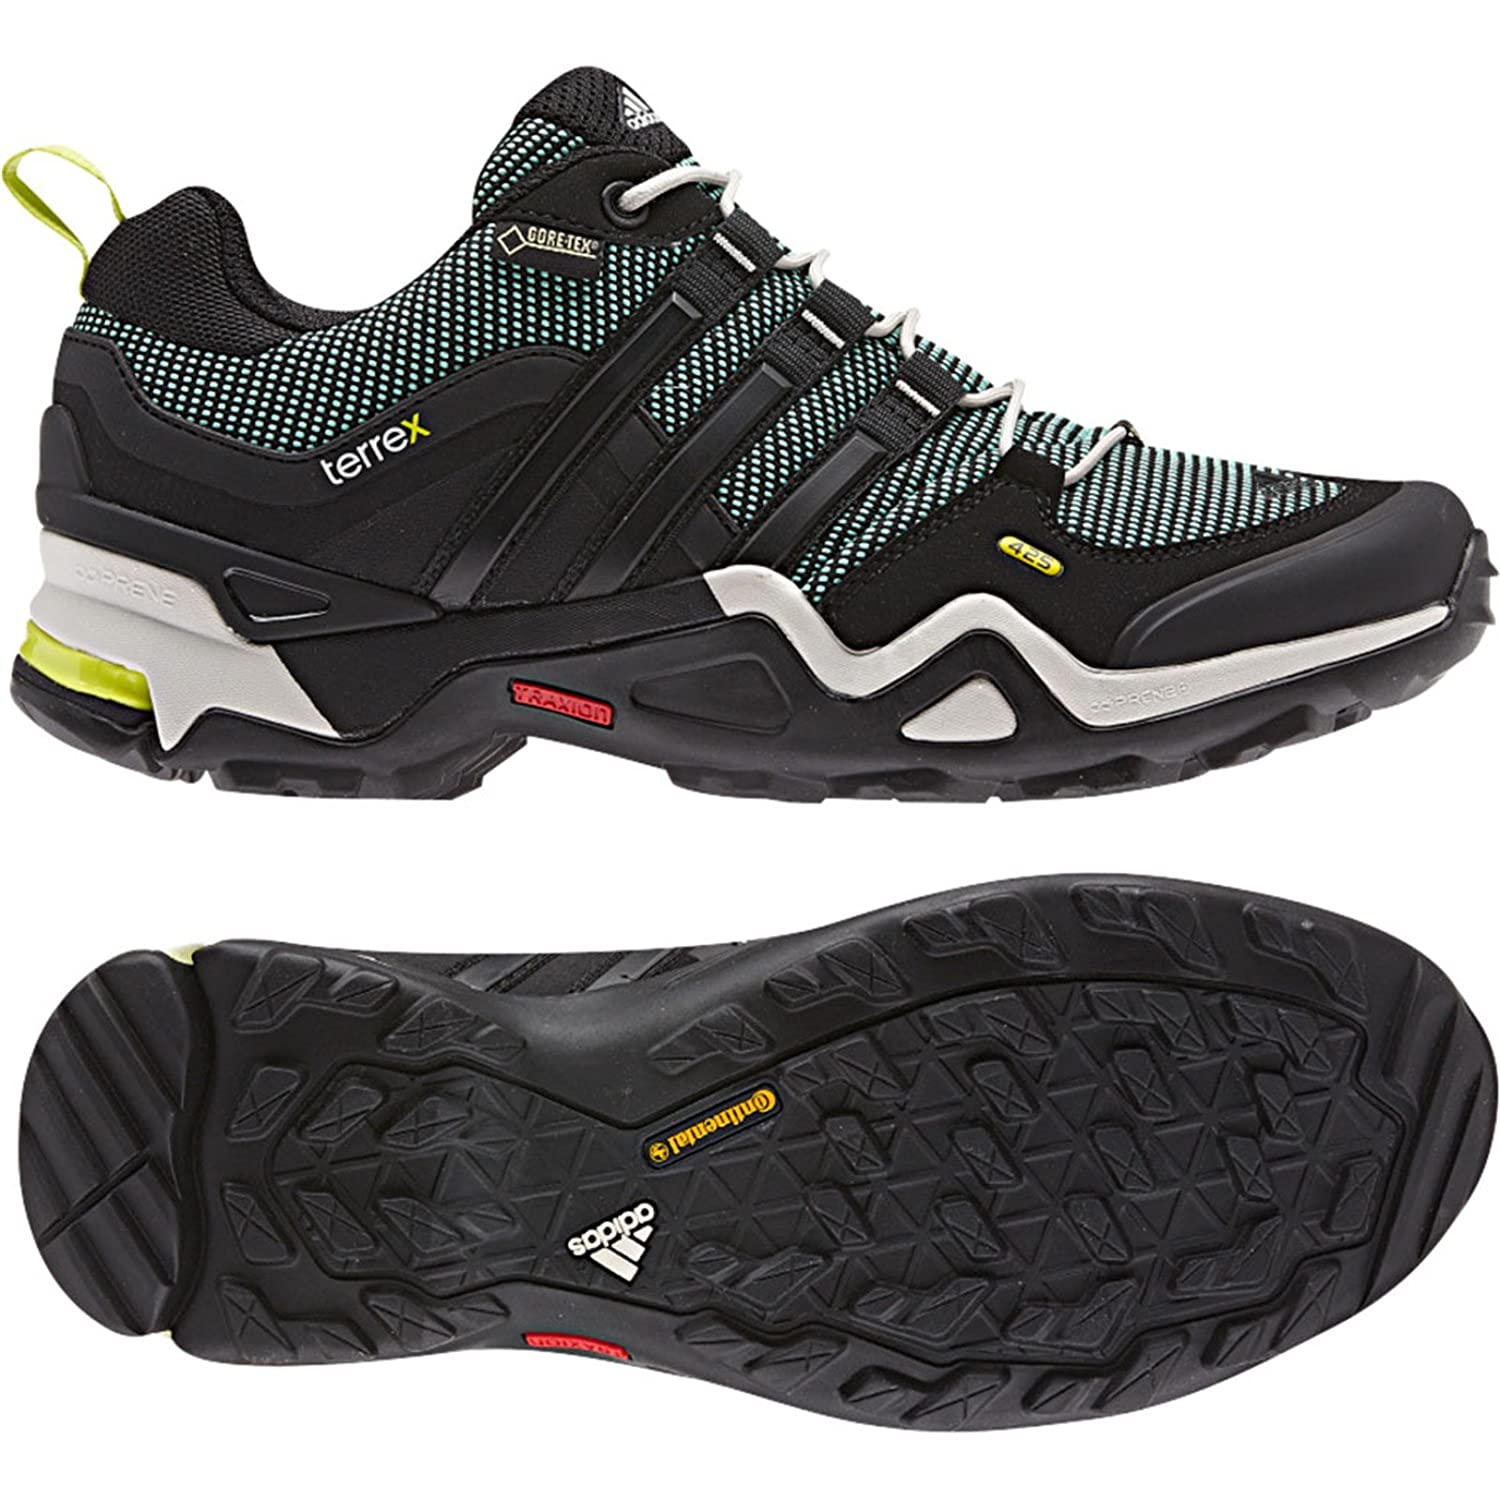 Adidas Outdoor Men's Terrex Fast X GTX Hiking Shoes